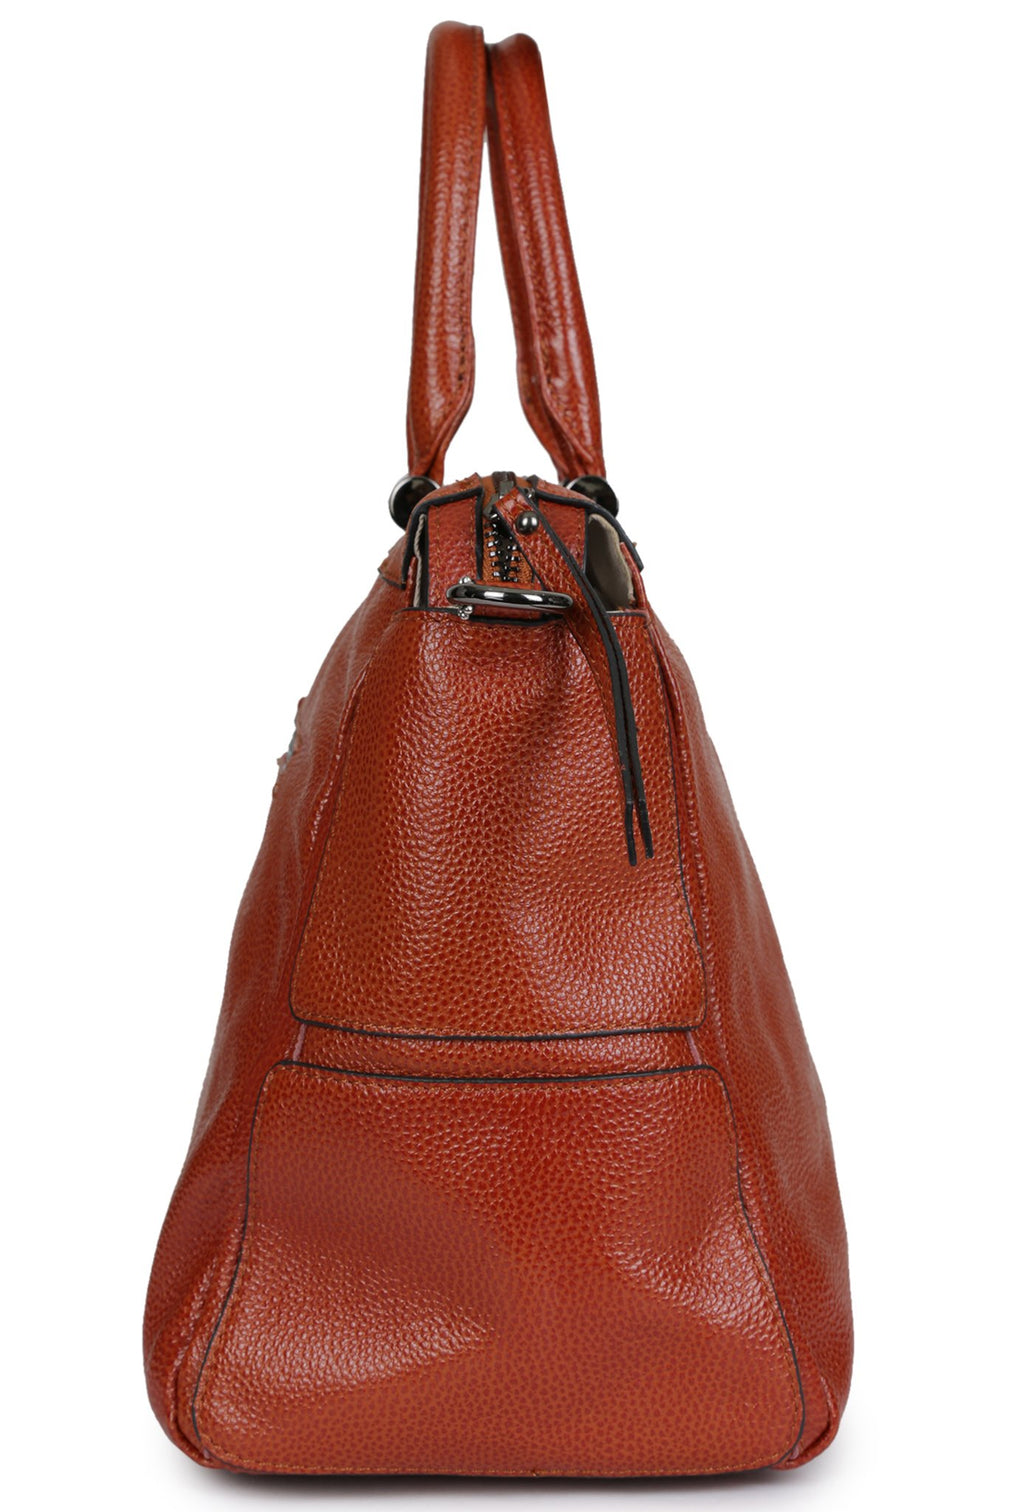 BISMA - Pebbled Leather Satchel - Burnt Orange